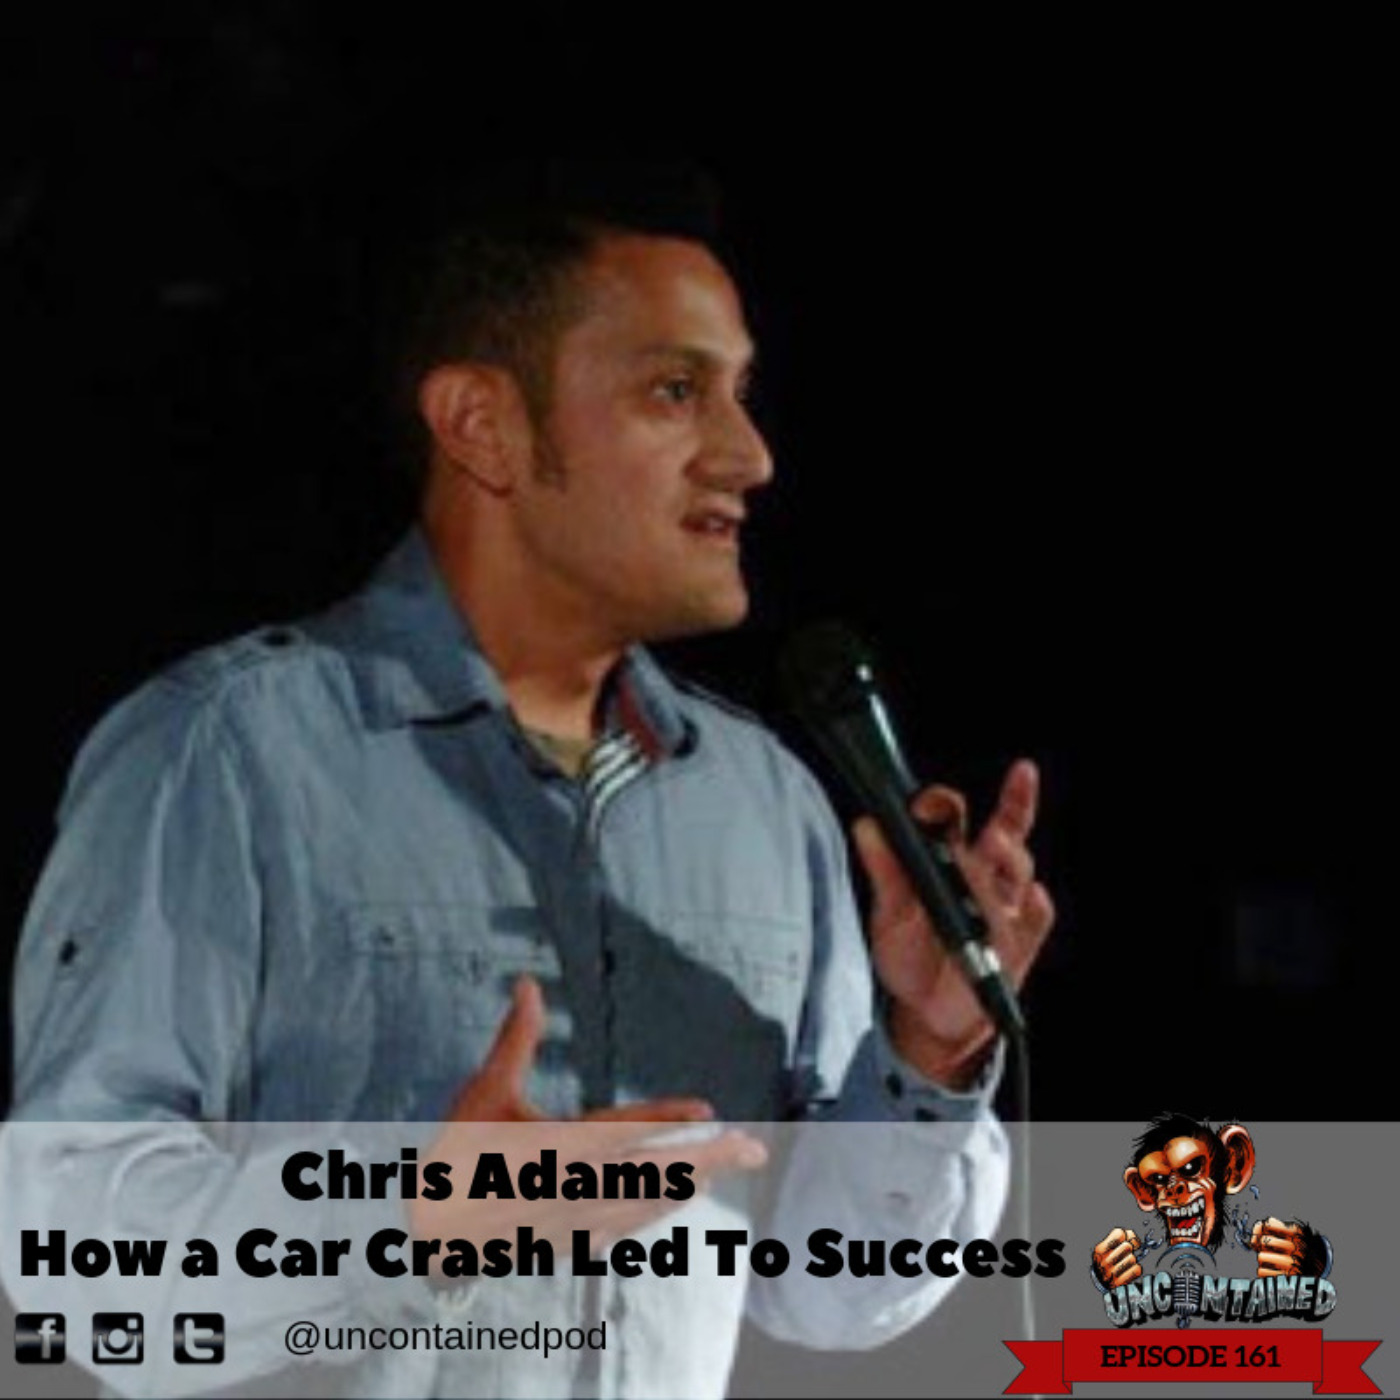 Episode 161: Chris Adams Returns - How a Car Crash Led To Success